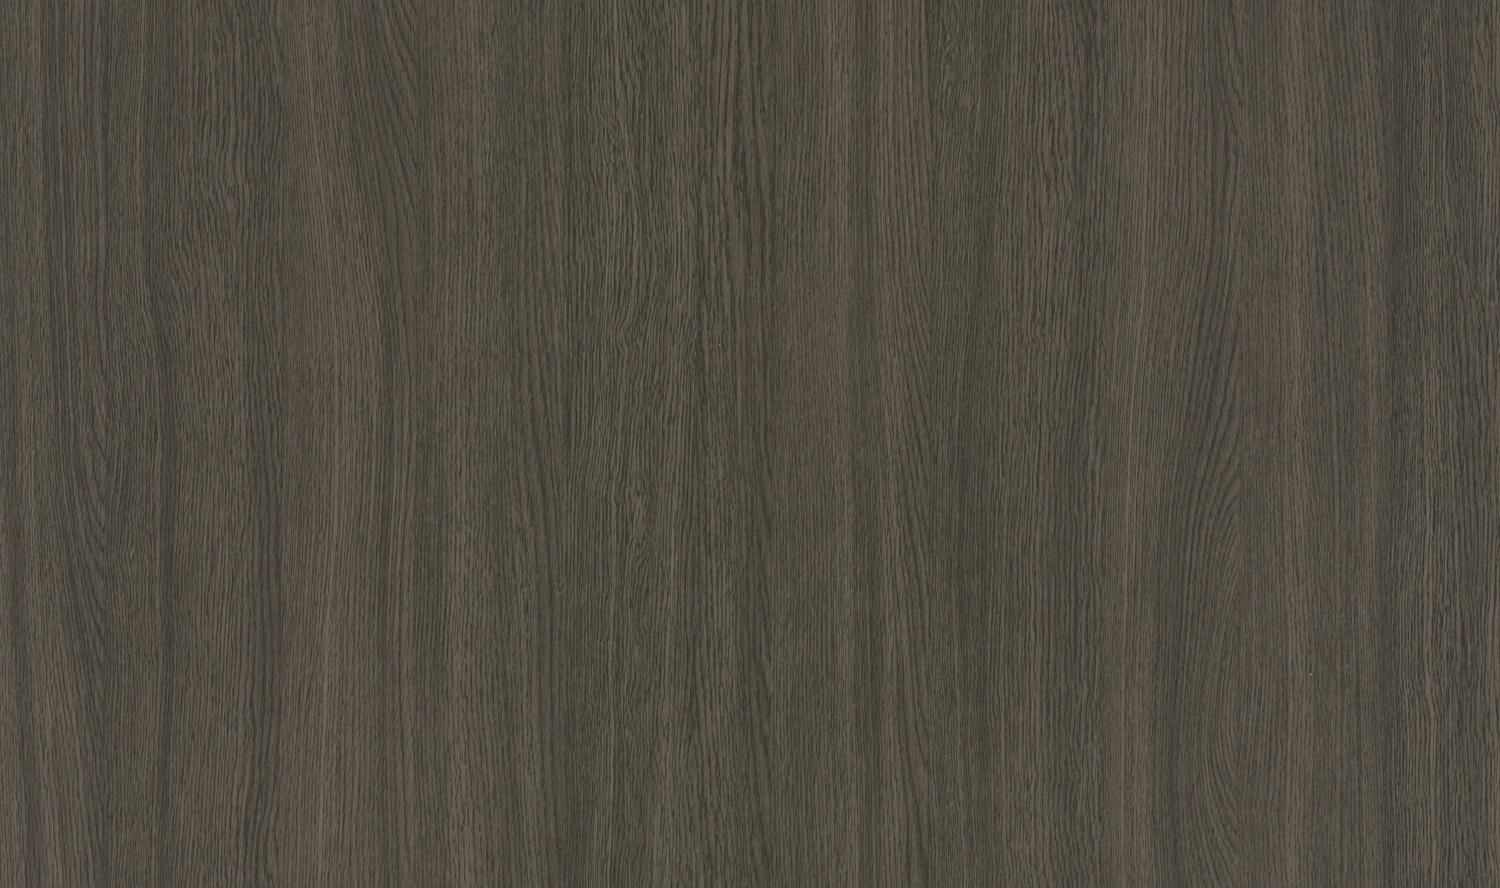 North Supreme, South Supreme In Laminate Flooring-Sundek International